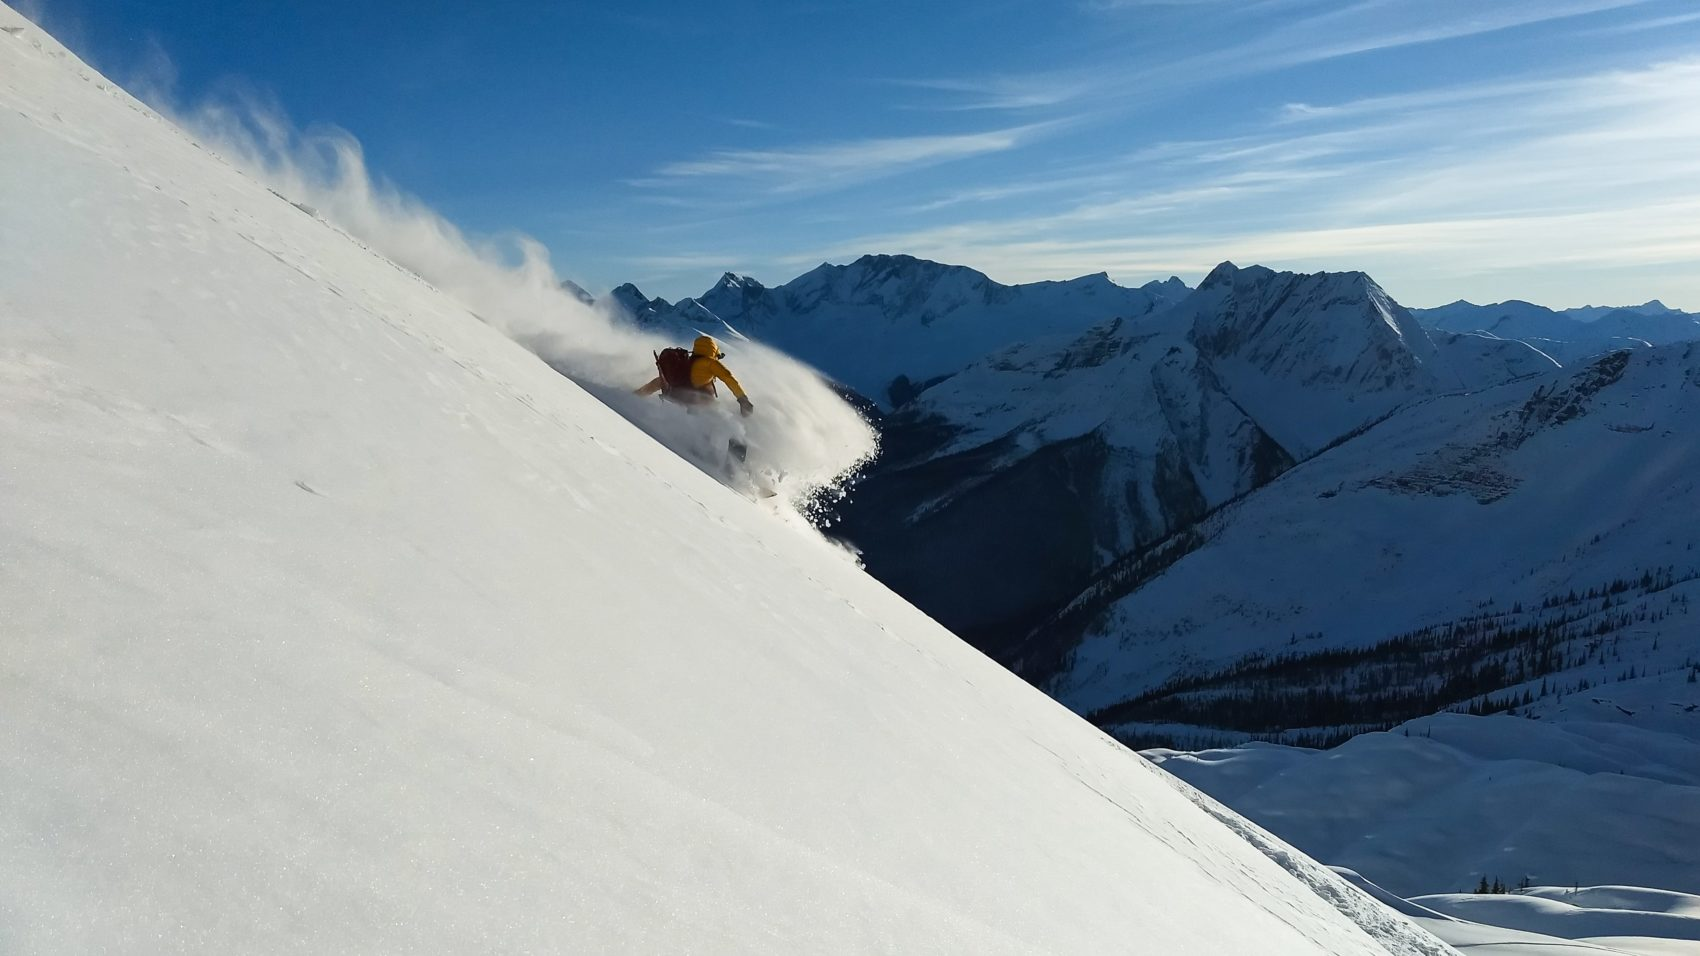 snowboarder carving down the hermit valley